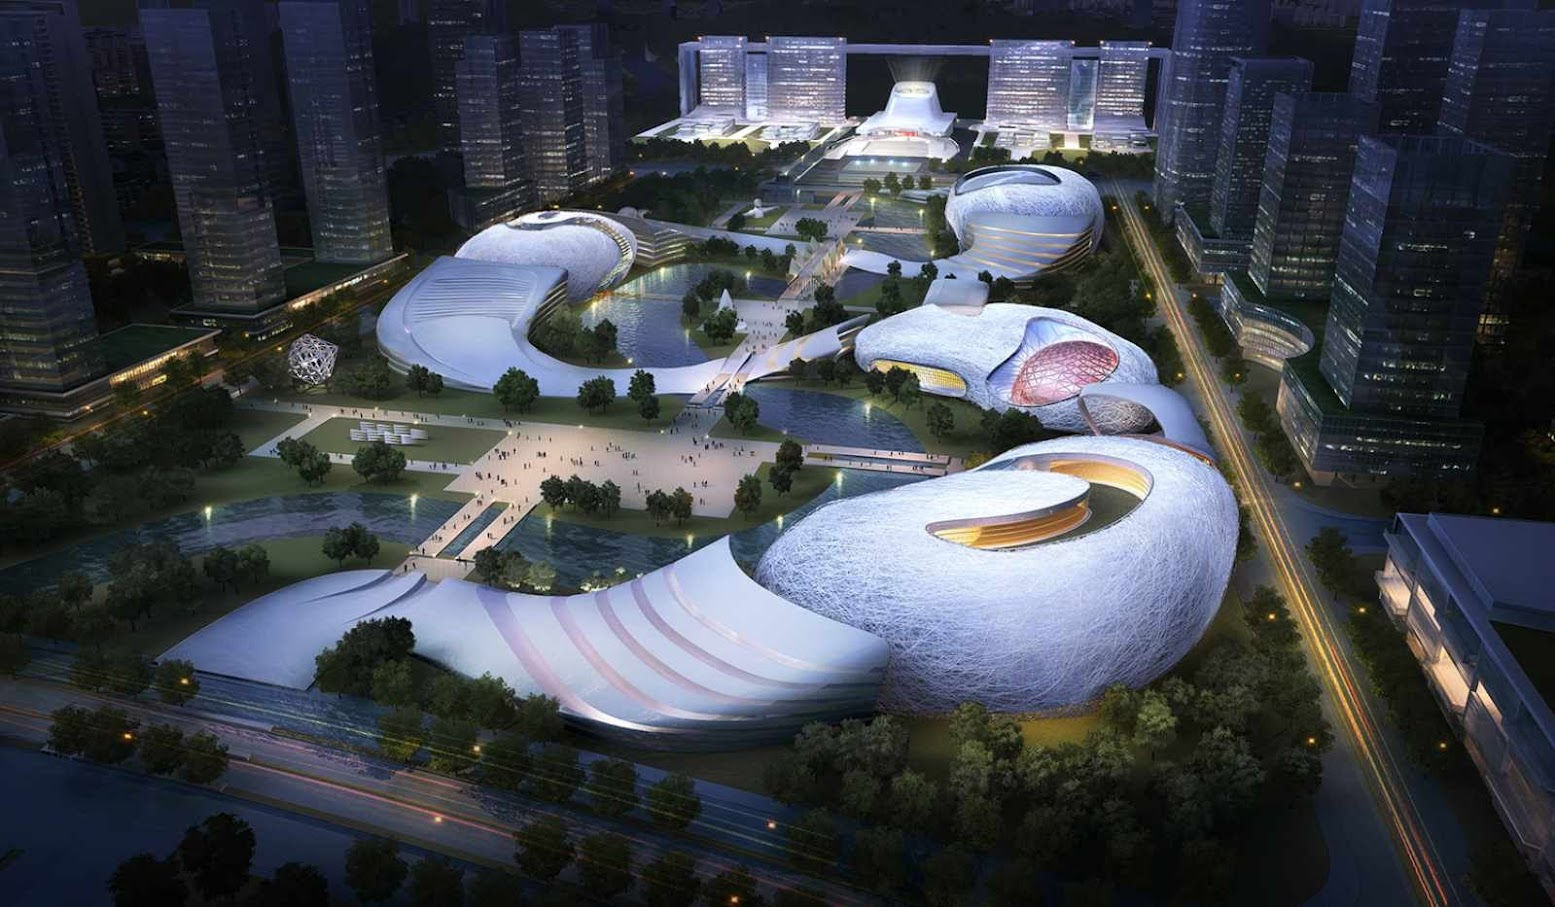 Yichang, Hubei, Cina: [YICHANG NEW DISTRICT MASTER PLAN BY AMPHIBIANARC]